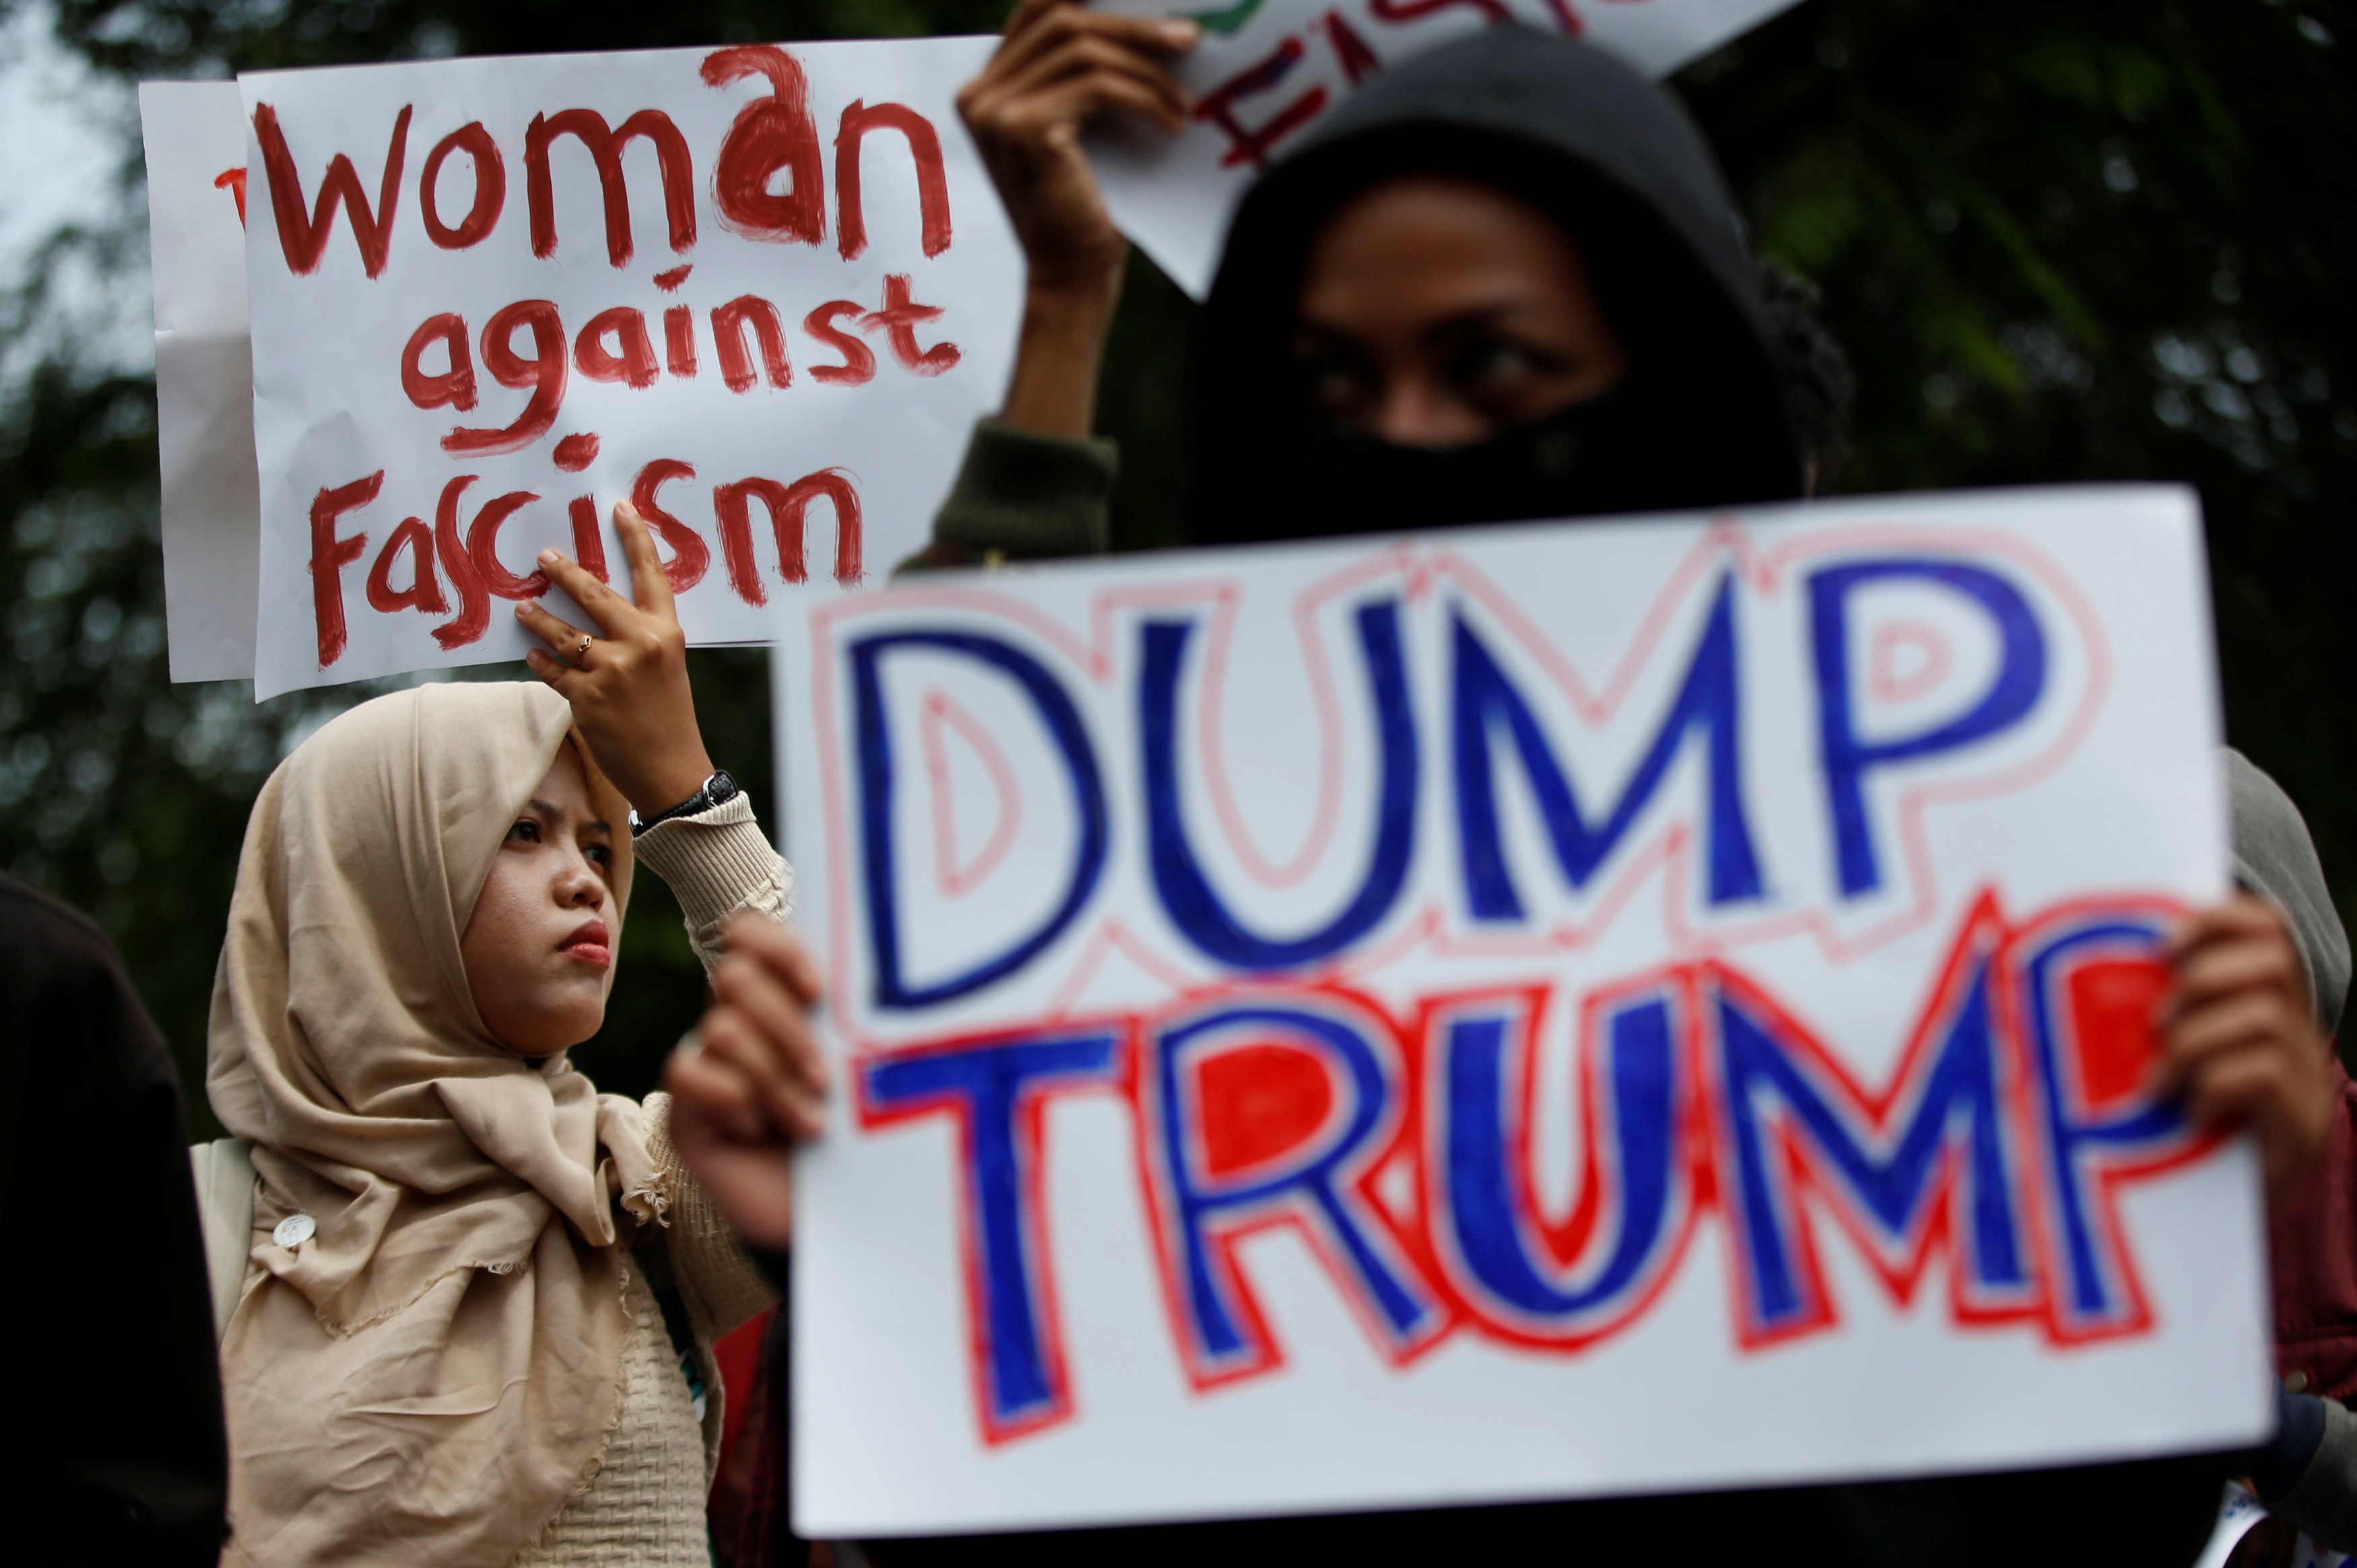 Activist hold placards as they protest against U.S. President Donald Trump's recent policies, outside the U.S. embassy in Jakarta, Indonesia, February 4, 2017. REUTERS/Darren Whiteside - RTX2ZKM1